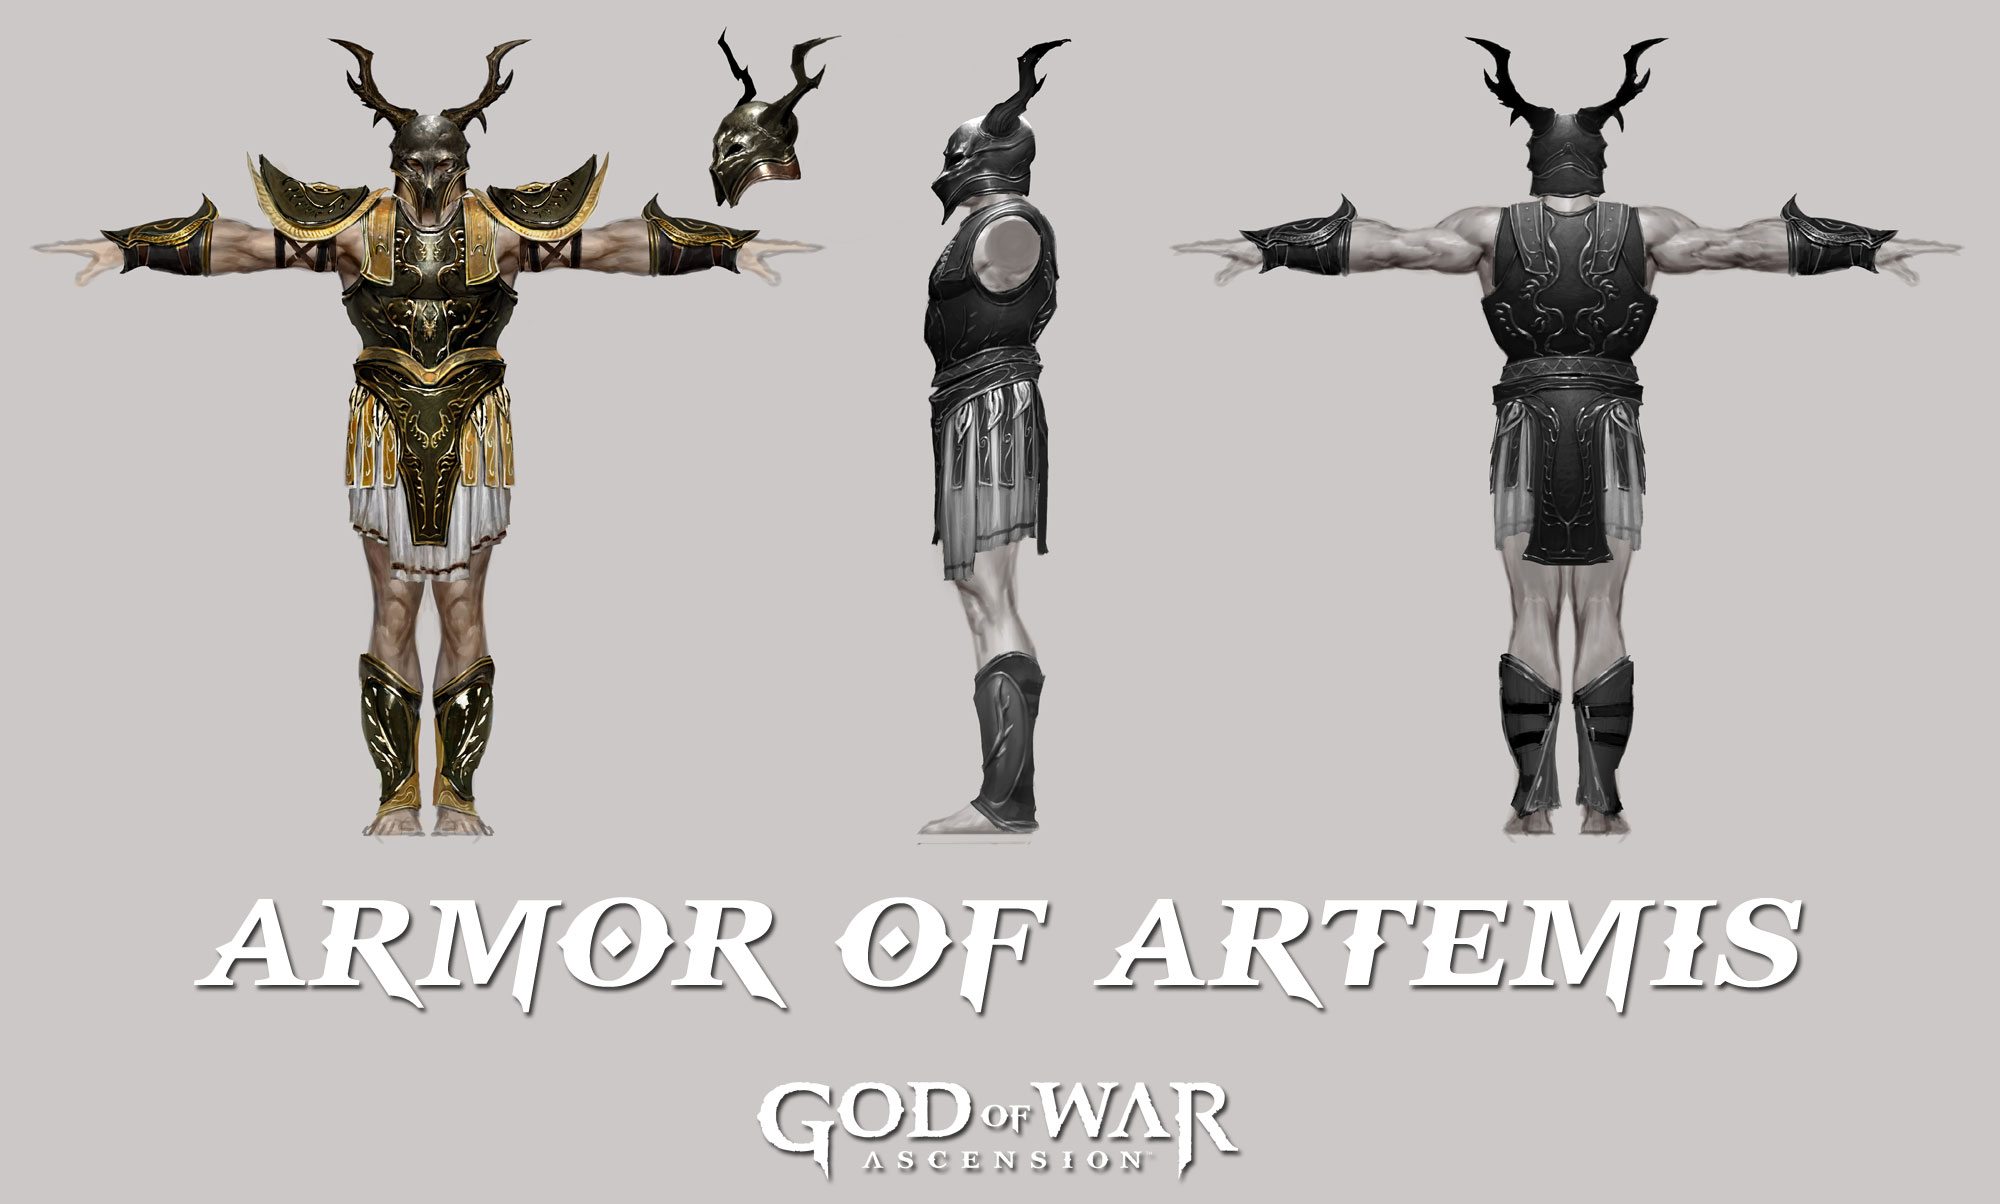 Image gow artemisarmor webg god of war wiki fandom powered thumbnail for version as of 0515 january 18 2013 biocorpaavc Images